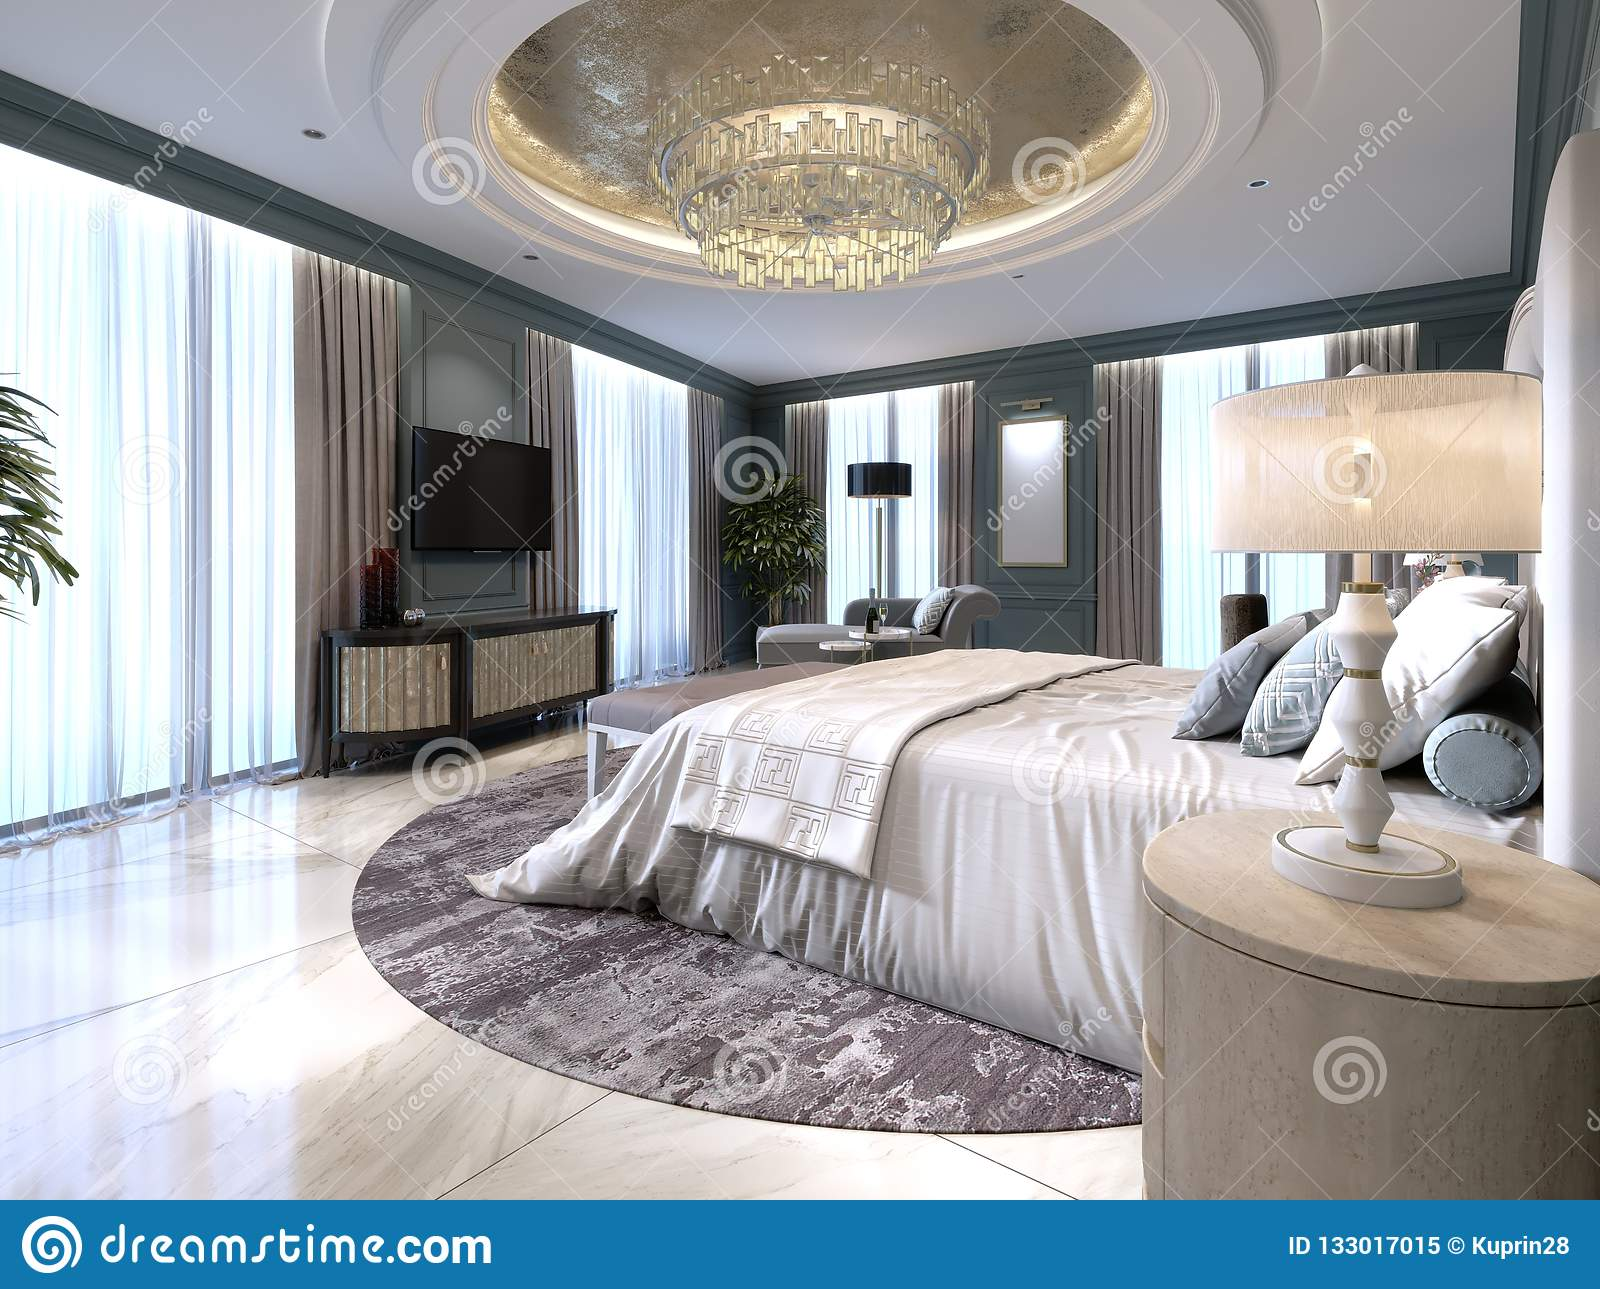 Modern Decorations For Bedroom The Modern Design Of The Bedroom With A Large White Bed And